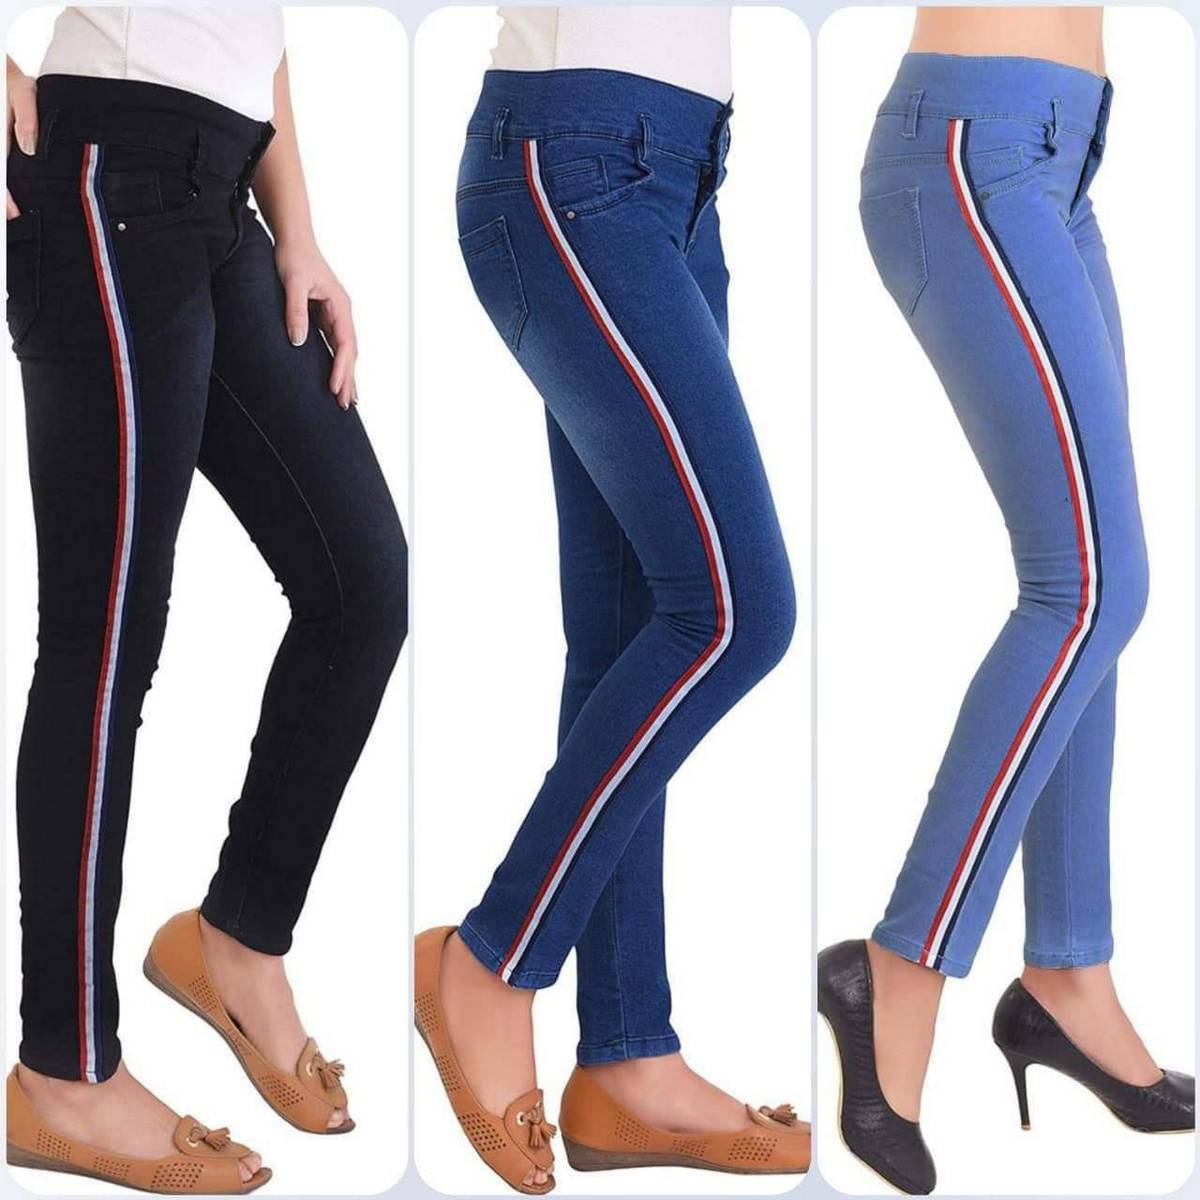 AW pack of 3 Jeans Cover Girl Striped Skinny Jeans for Women